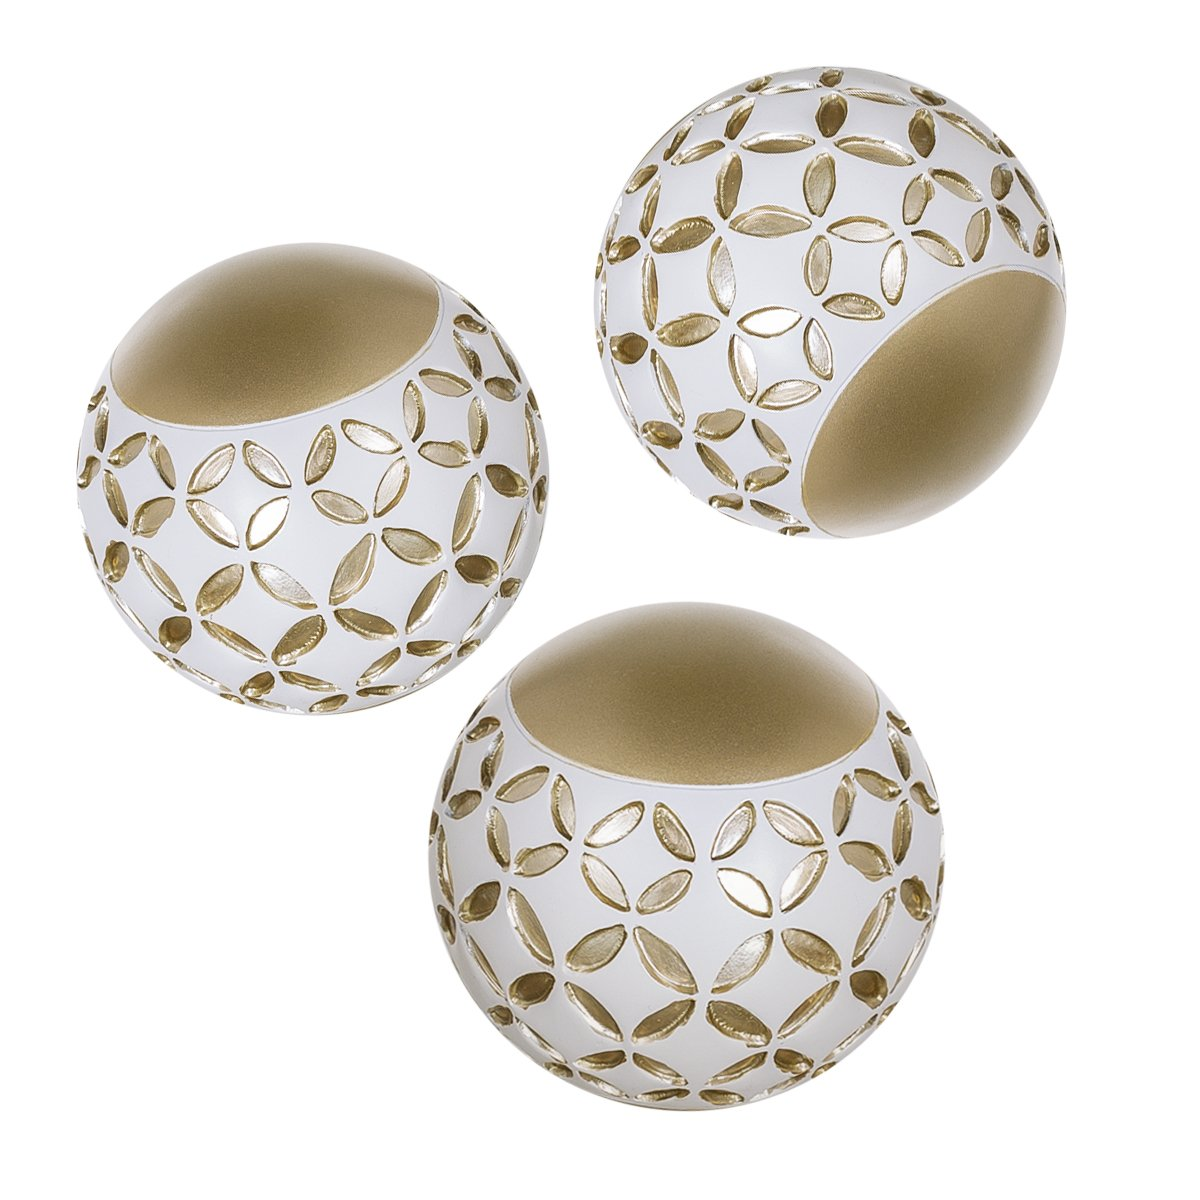 Black Decorative Balls For Bowls: Best Rated In Decorative Balls & Helpful Customer Reviews